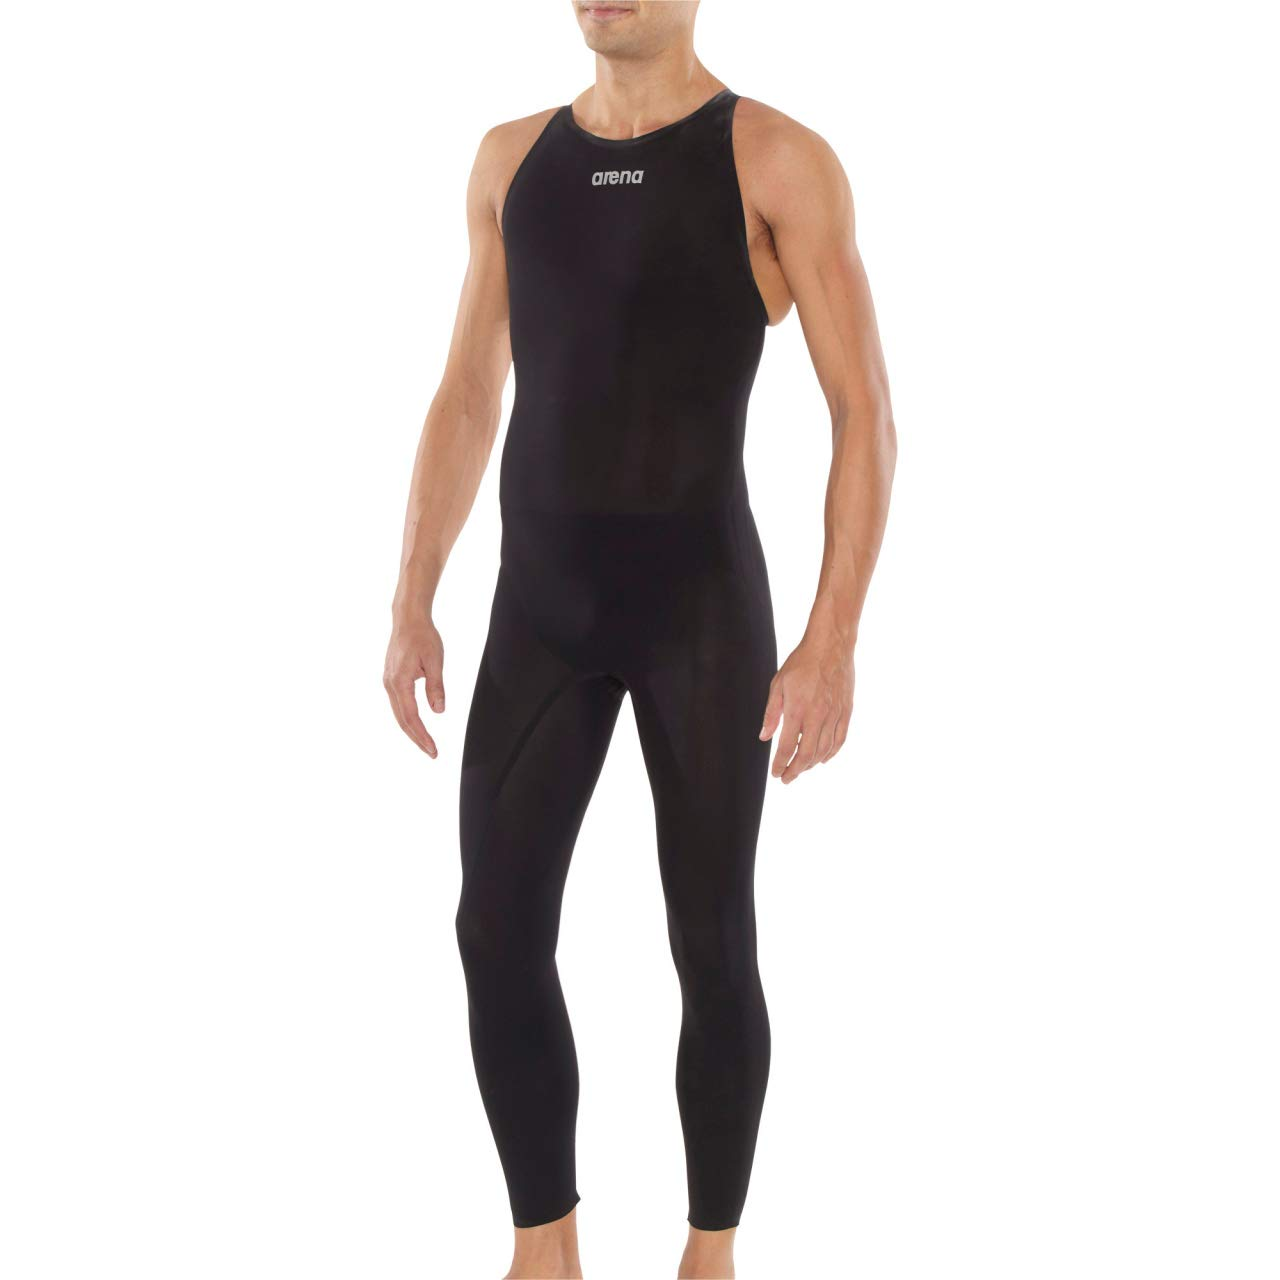 arena Powerskin R-Evo+ Open Water Closed Back Men's Racing Swimsuit, SL Black, 24